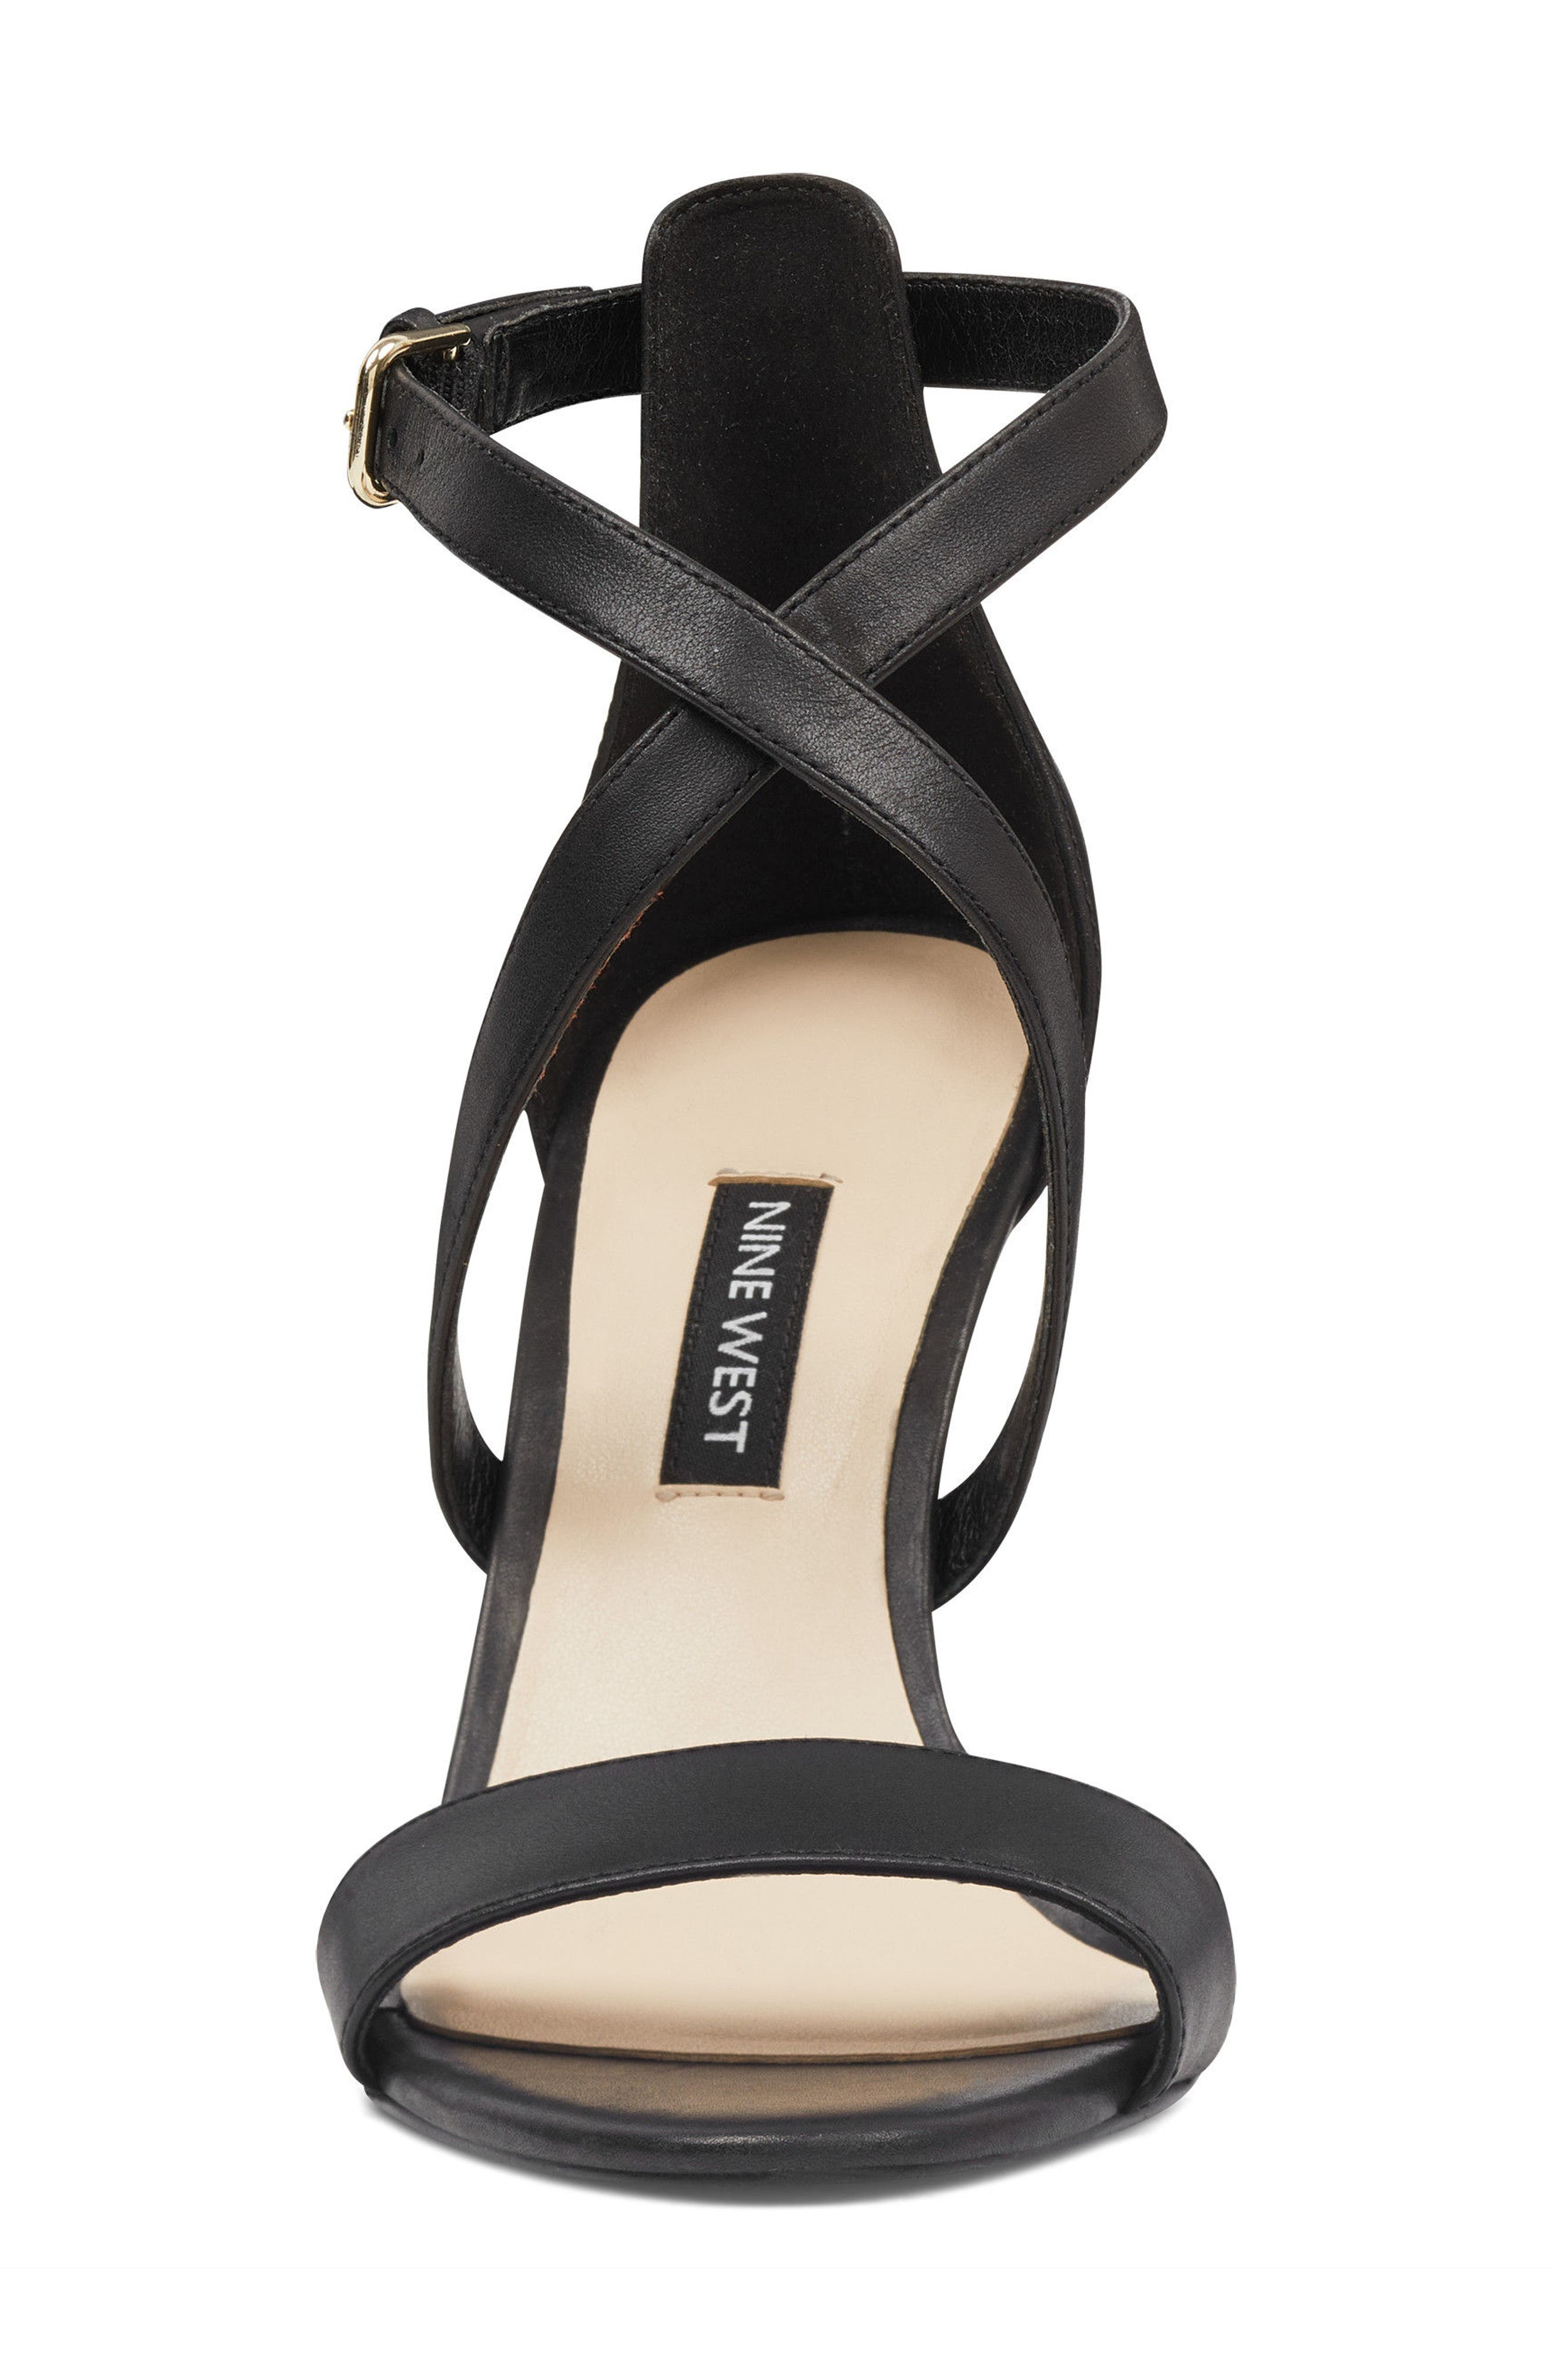 Mydebut Strappy Sandal,                             Alternate thumbnail 4, color,                             BLACK LEATHER